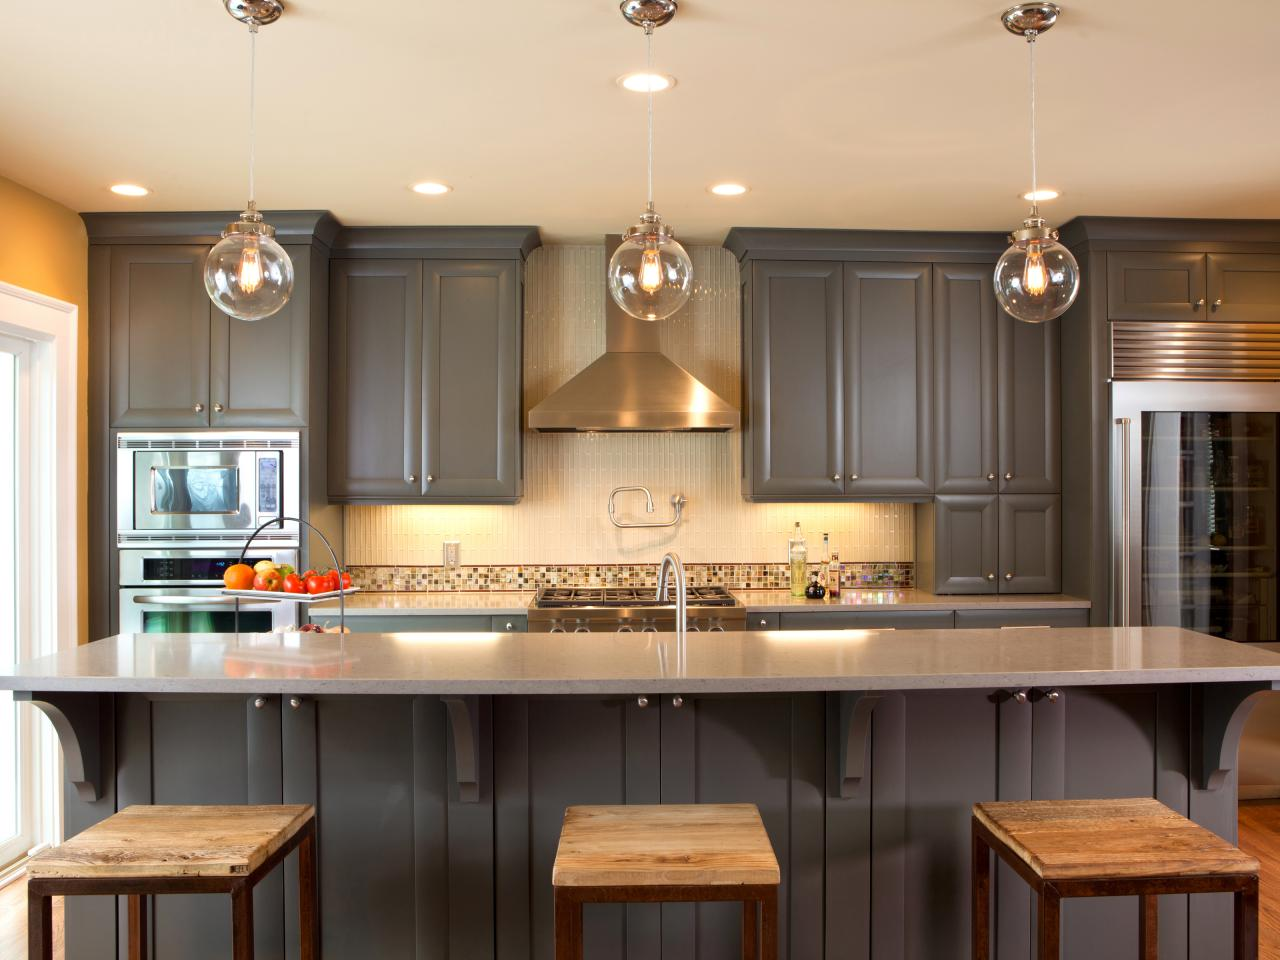 25 Tips For Painting Kitchen Cabinets | DIY Network Blog: Made + ...